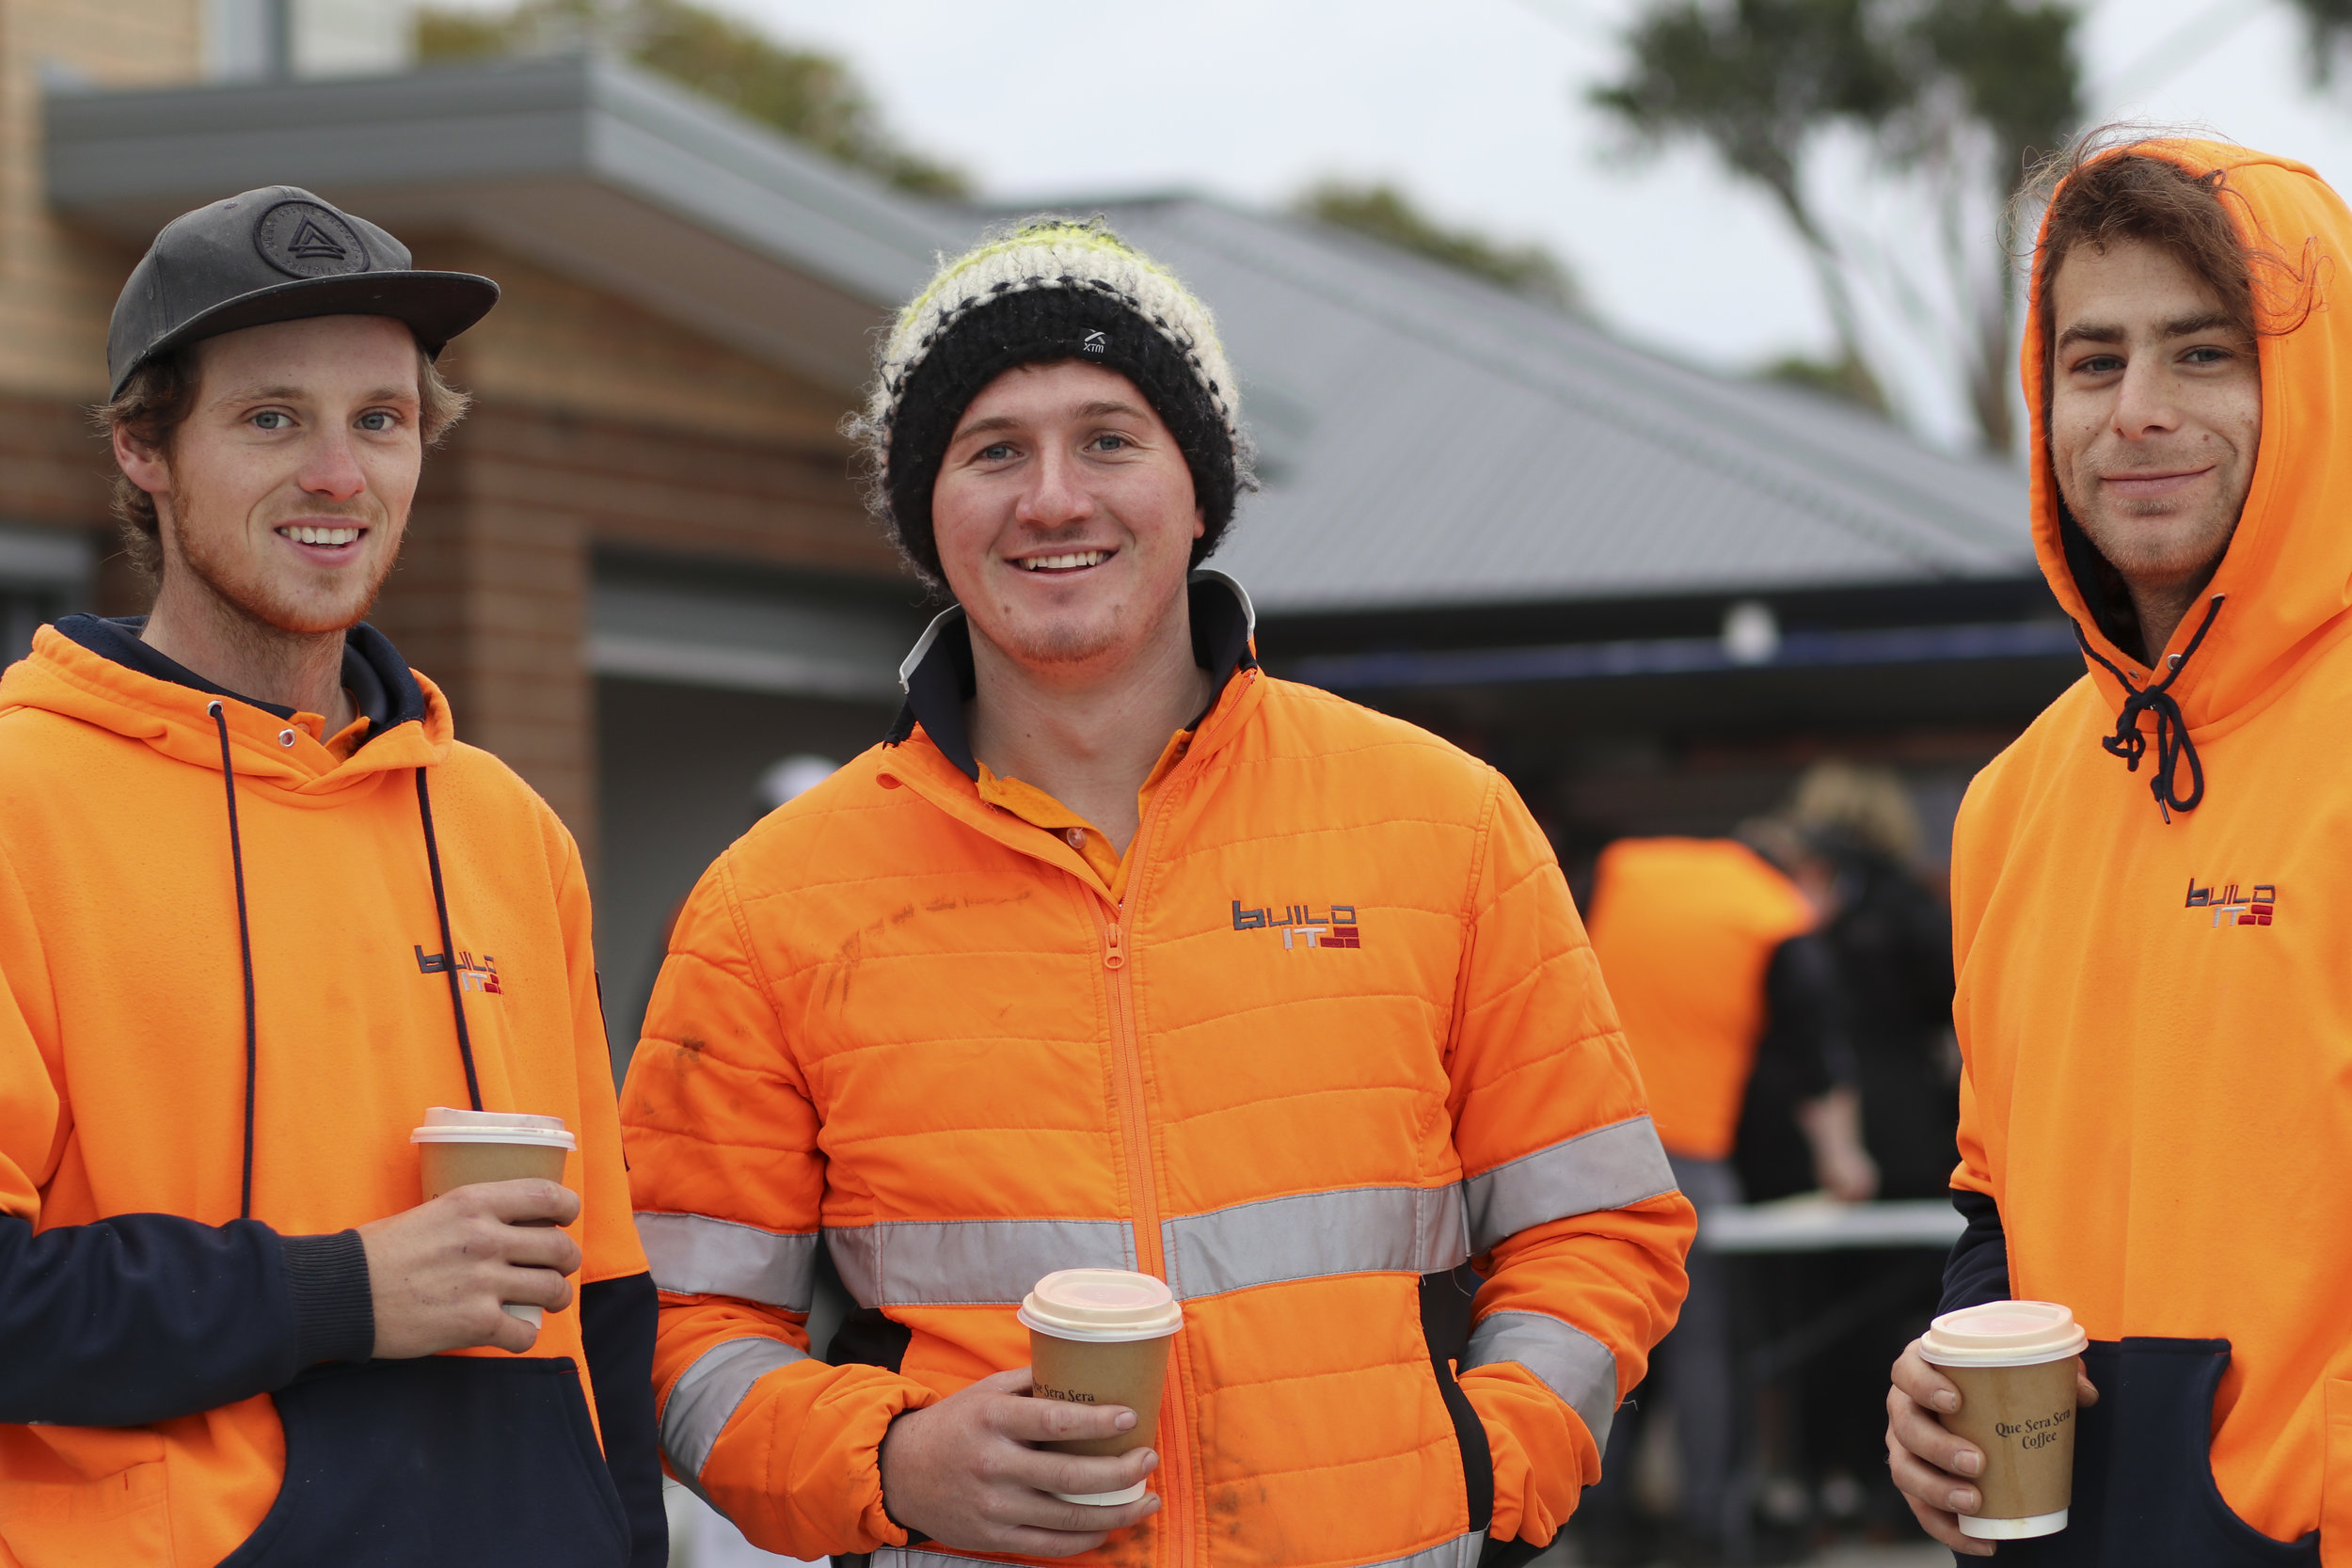 Tradies enjoying breakfast at the Gage Rd building site